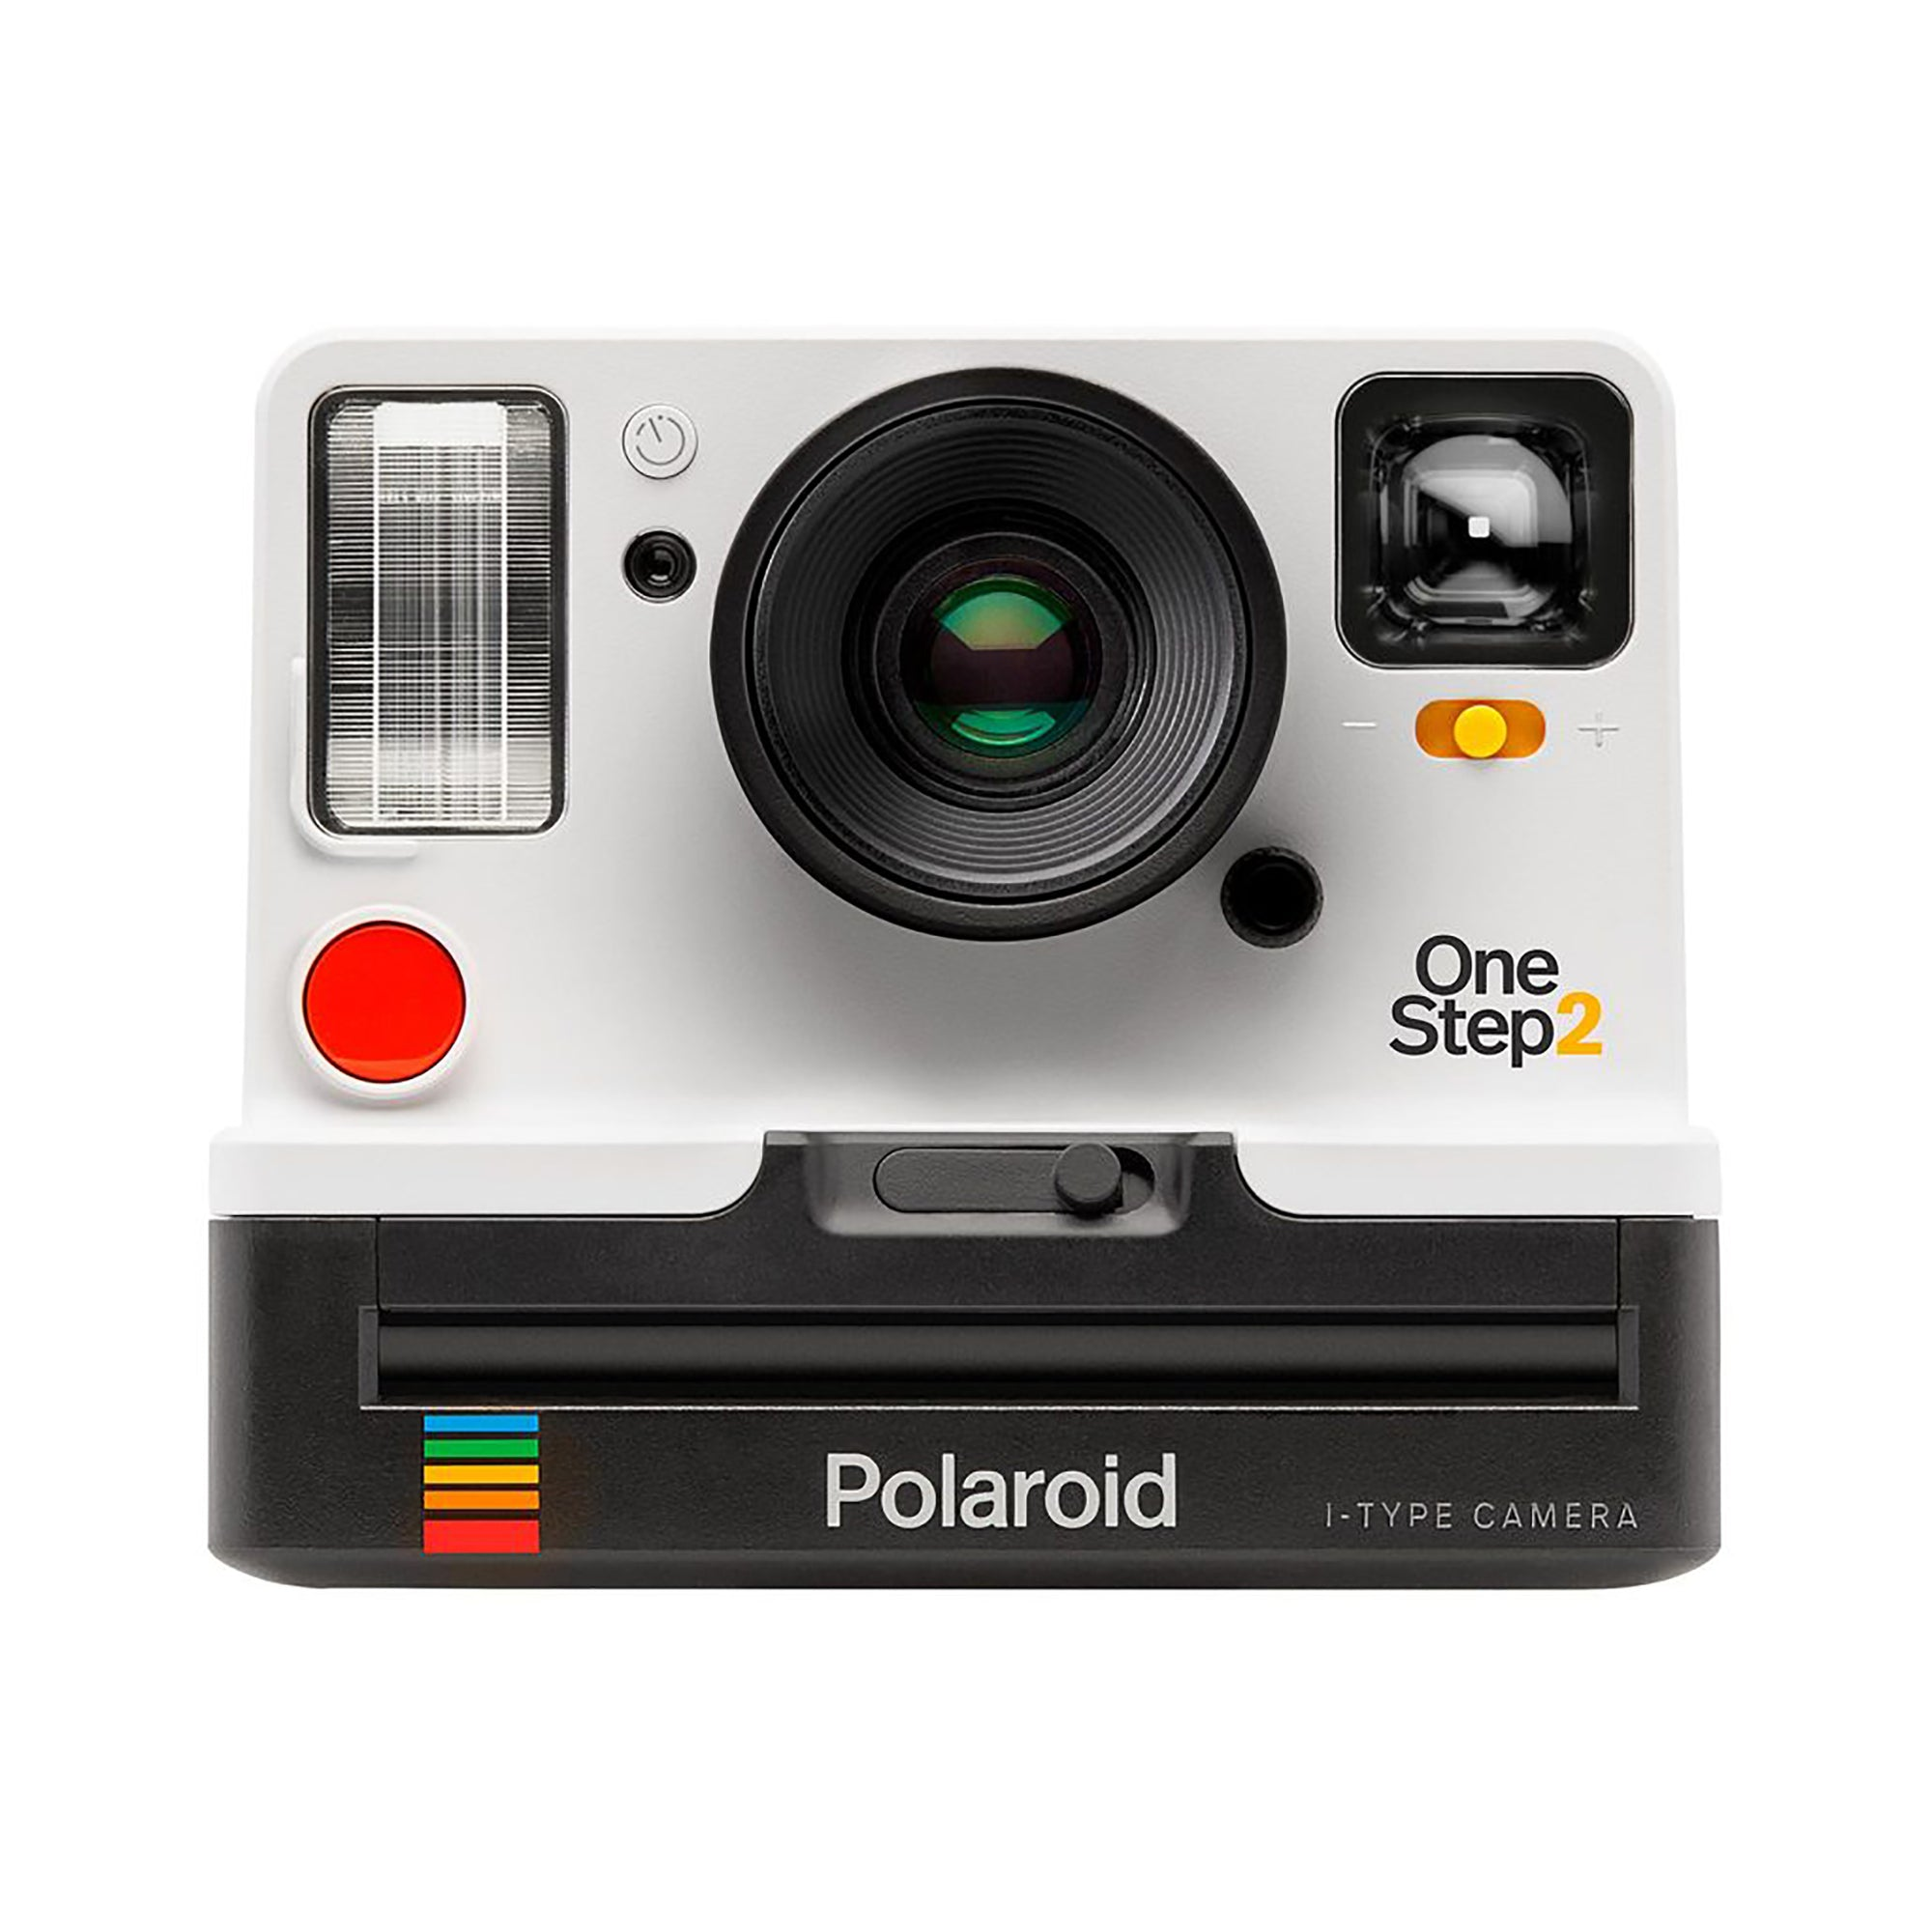 fc7182d6d6ba Polaroid OneStep 2 Viewfinder i-Type Camera - White - The Getty Store